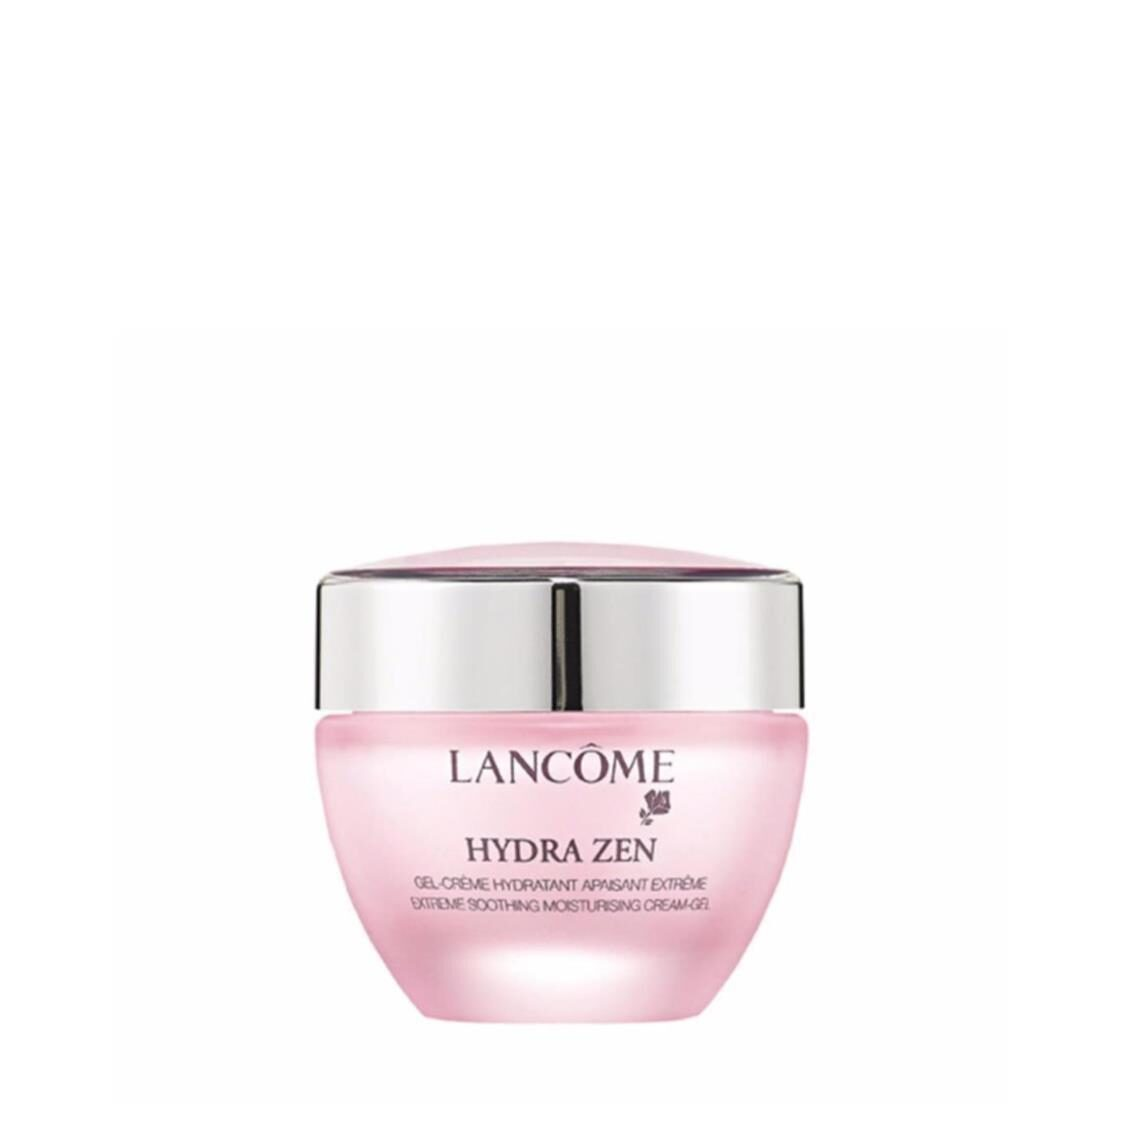 Lancome Hydra Zen Cream-Gel 50ml